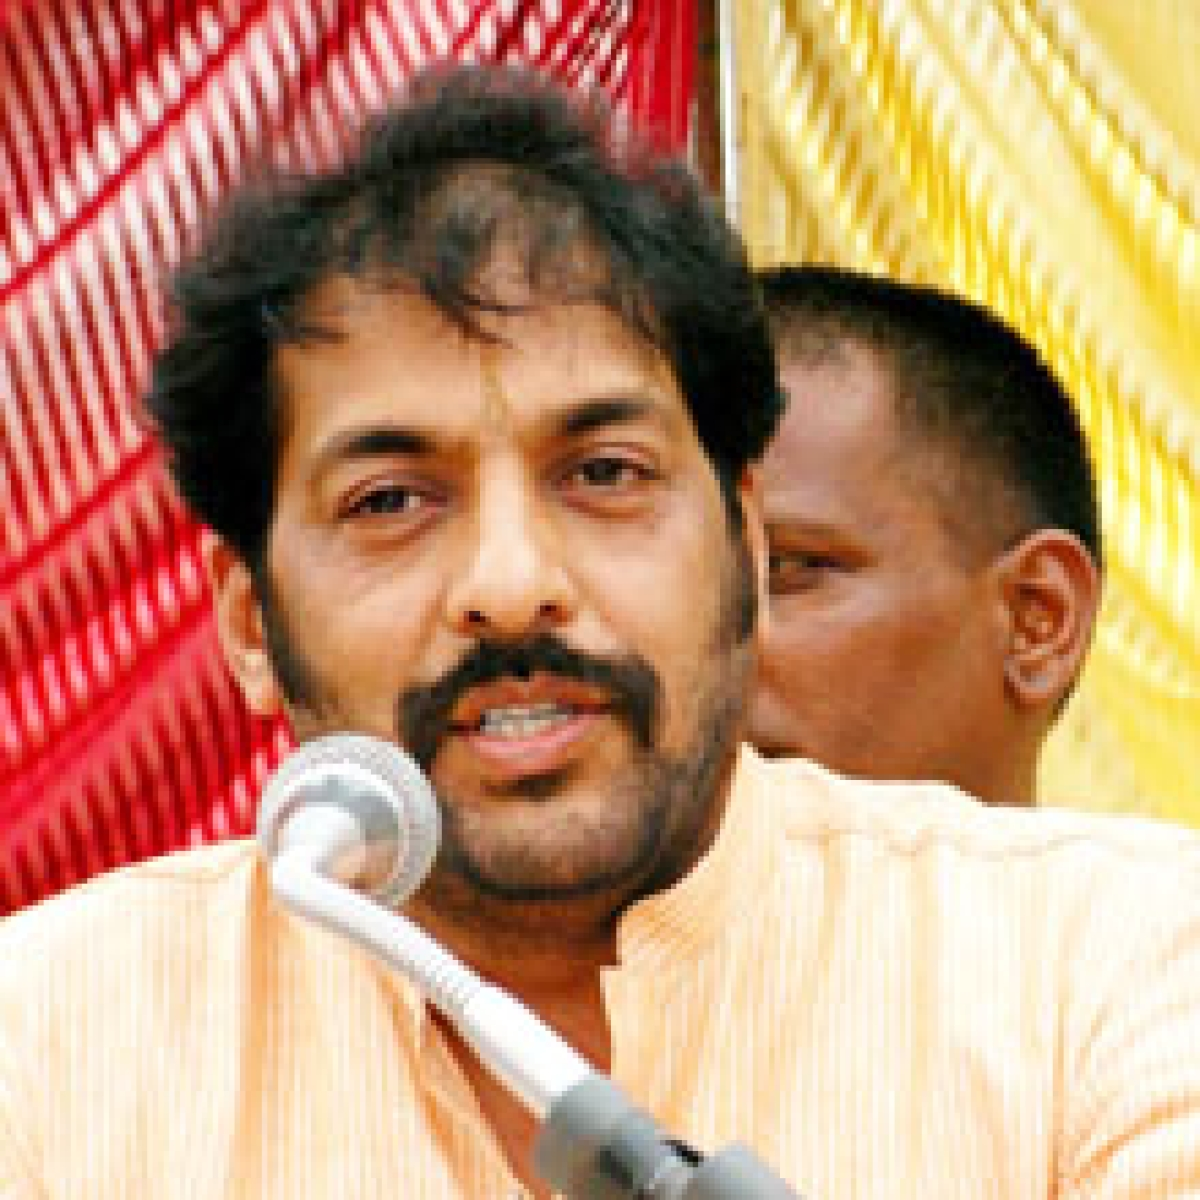 Twitterati urge BJP to ditch controversial MLA Gopal Kanda